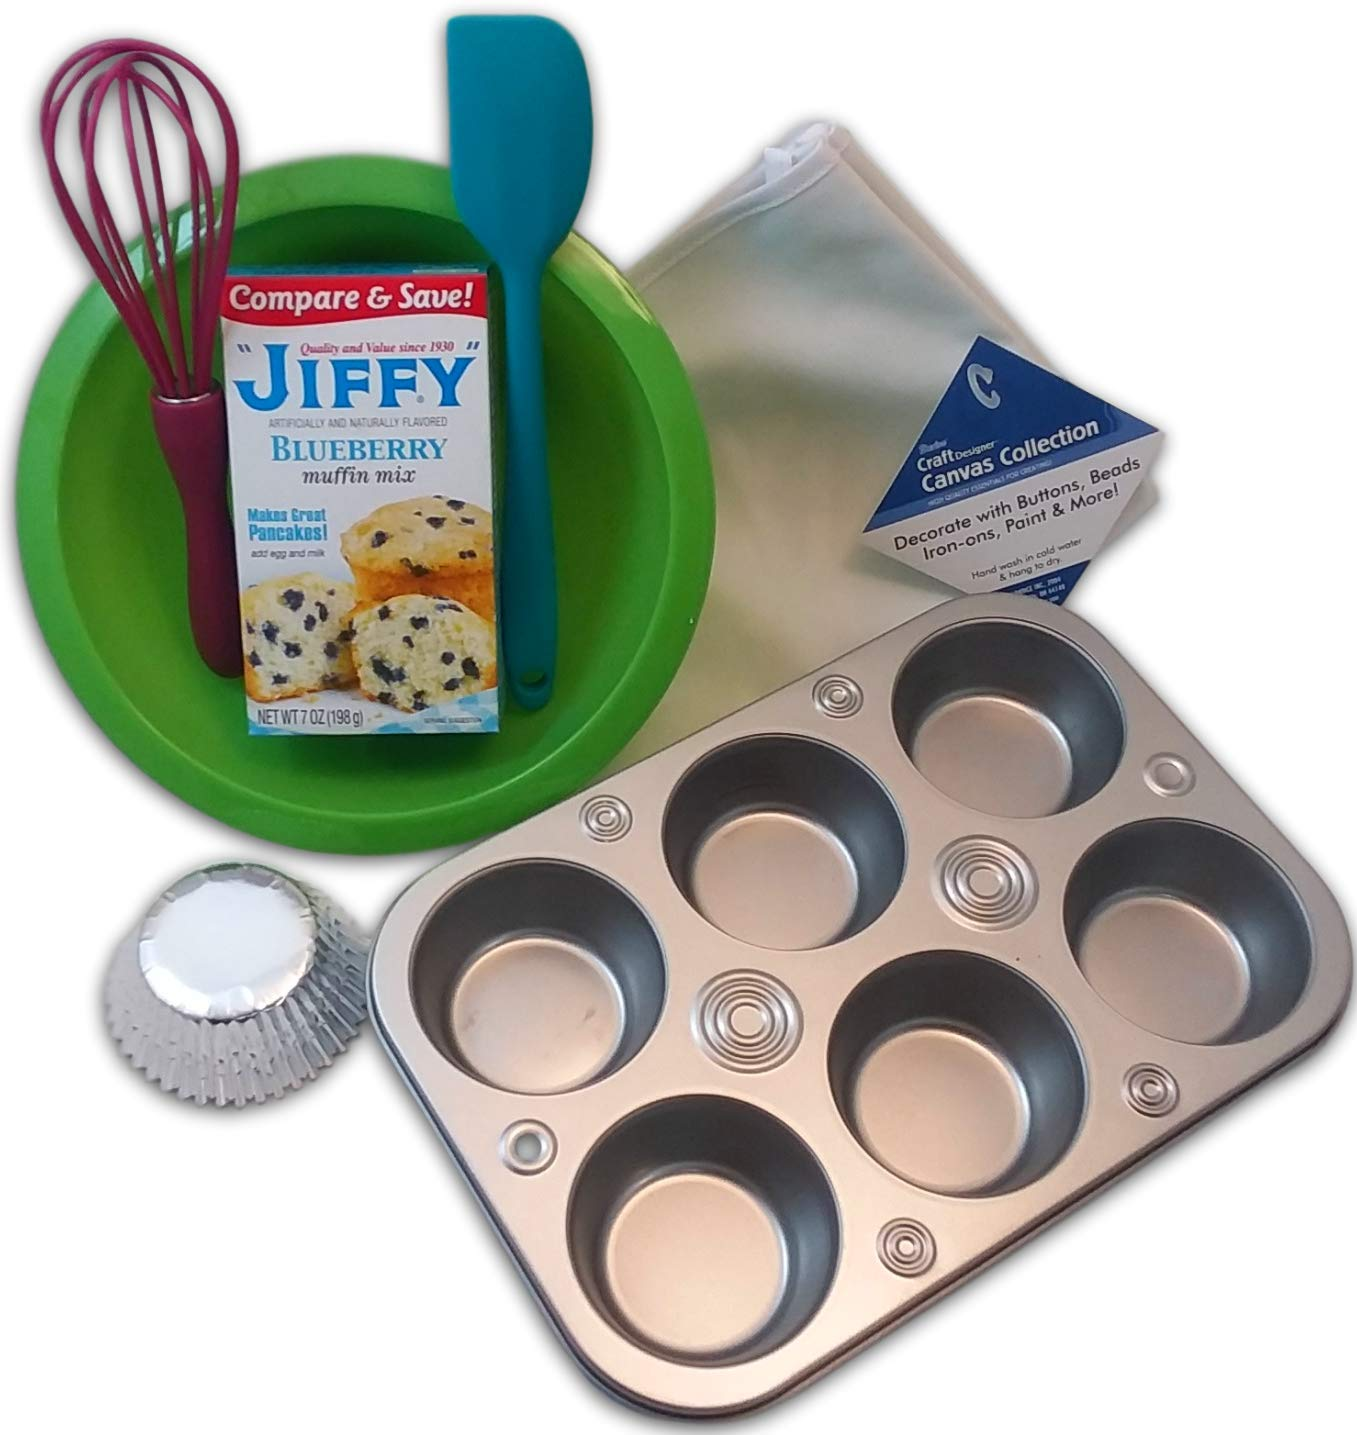 Kids Kitchen Tools Mini Cooking Utensils Baking Set for Kids or Adults Muffin Kit Bundle of 7 - Child Sized Apron, Mixing Bowl, Muffin Tin, Blueberry Mix and More Jr Baking Sets